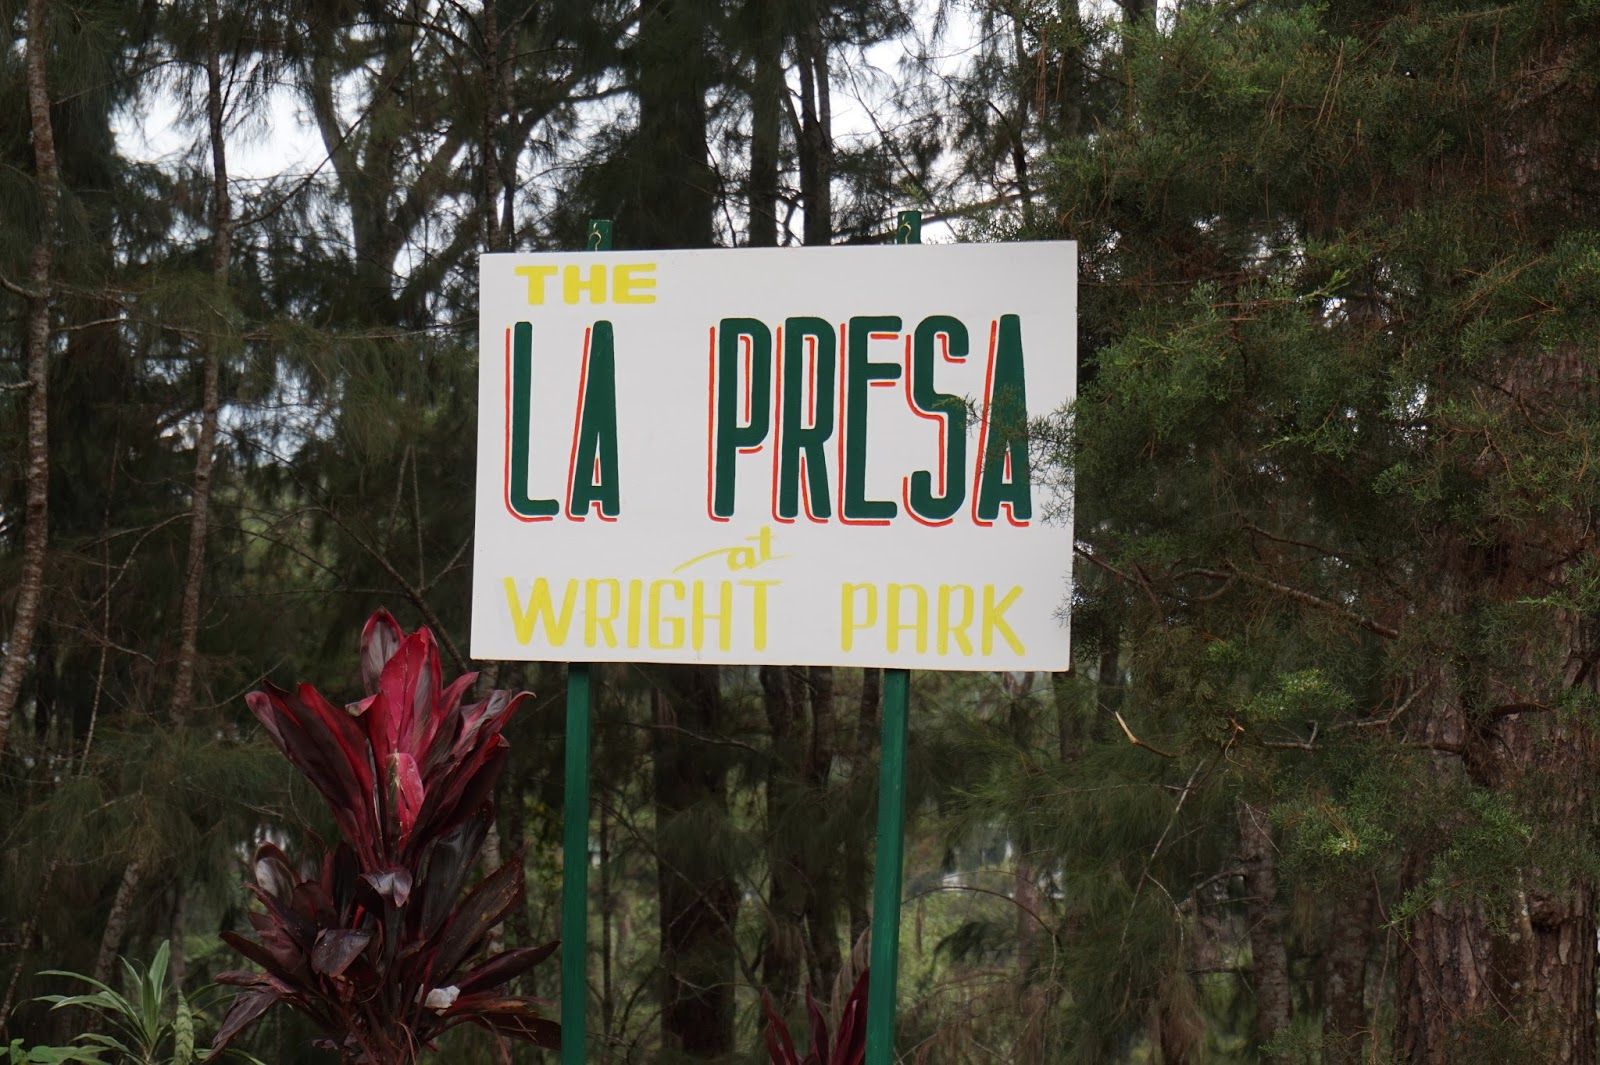 The La Presa at Wright Park